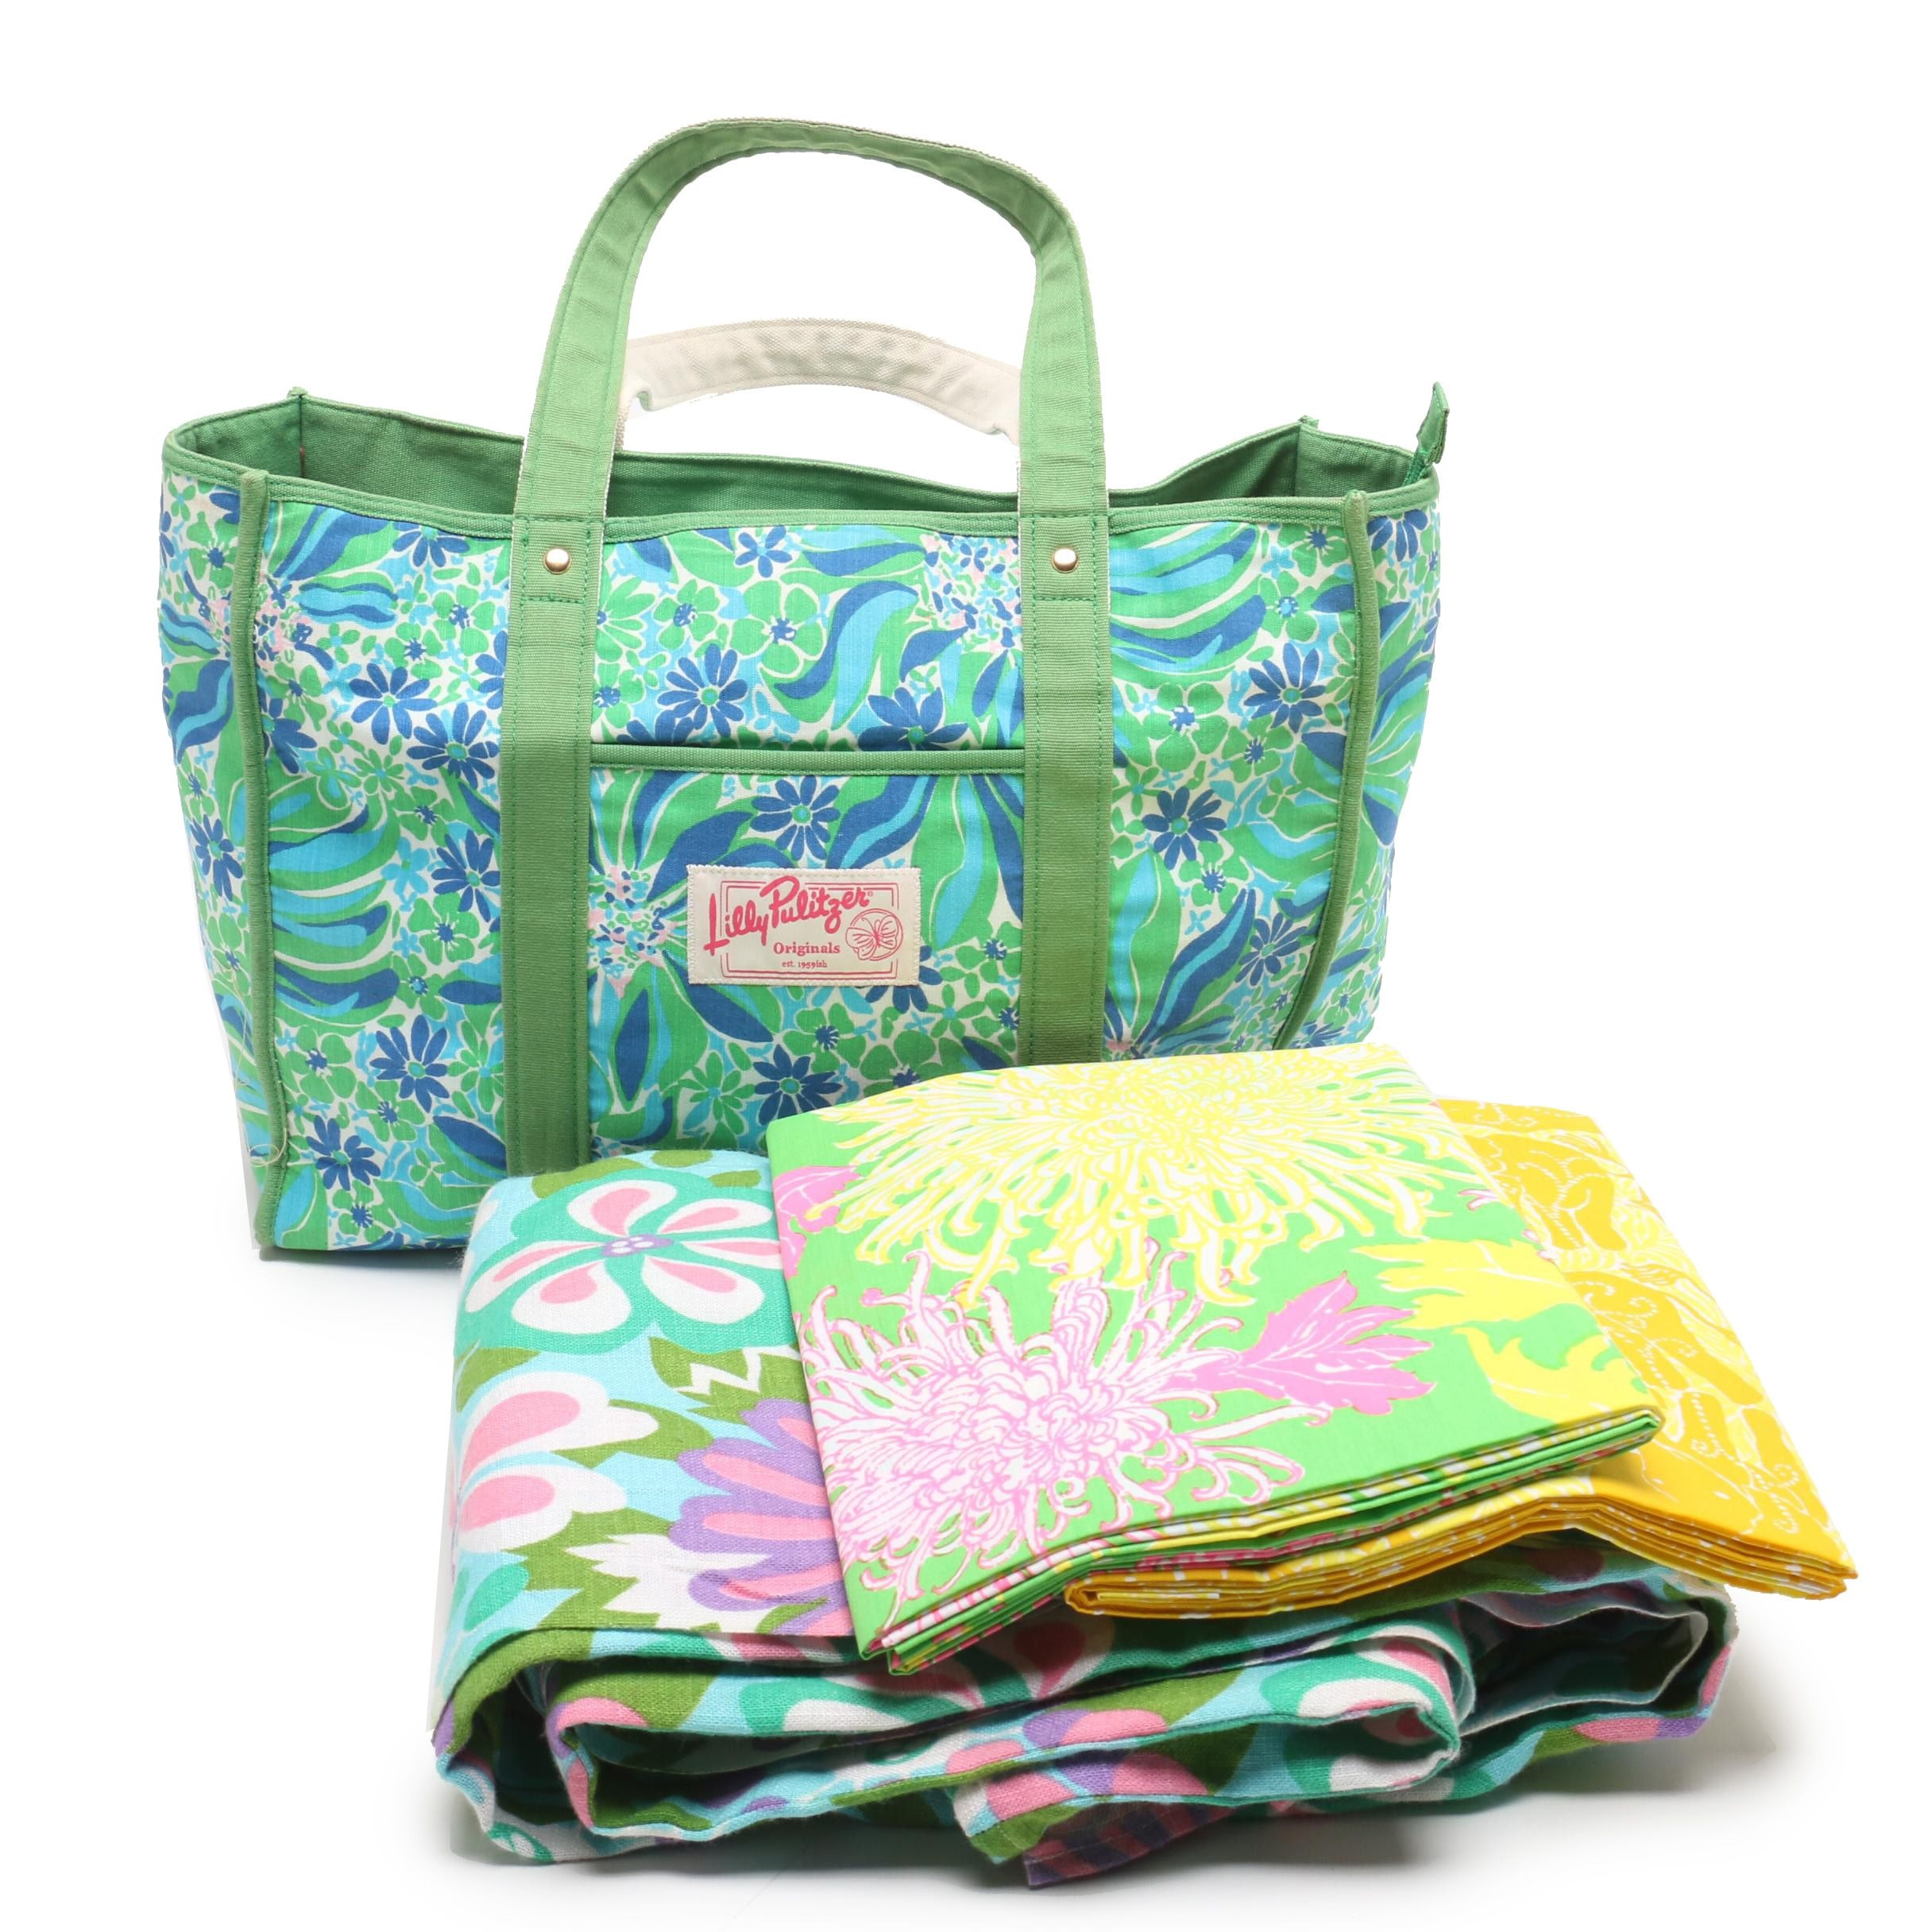 Lilly Pulitzer Originals Patterned Tote Bag and Fabric